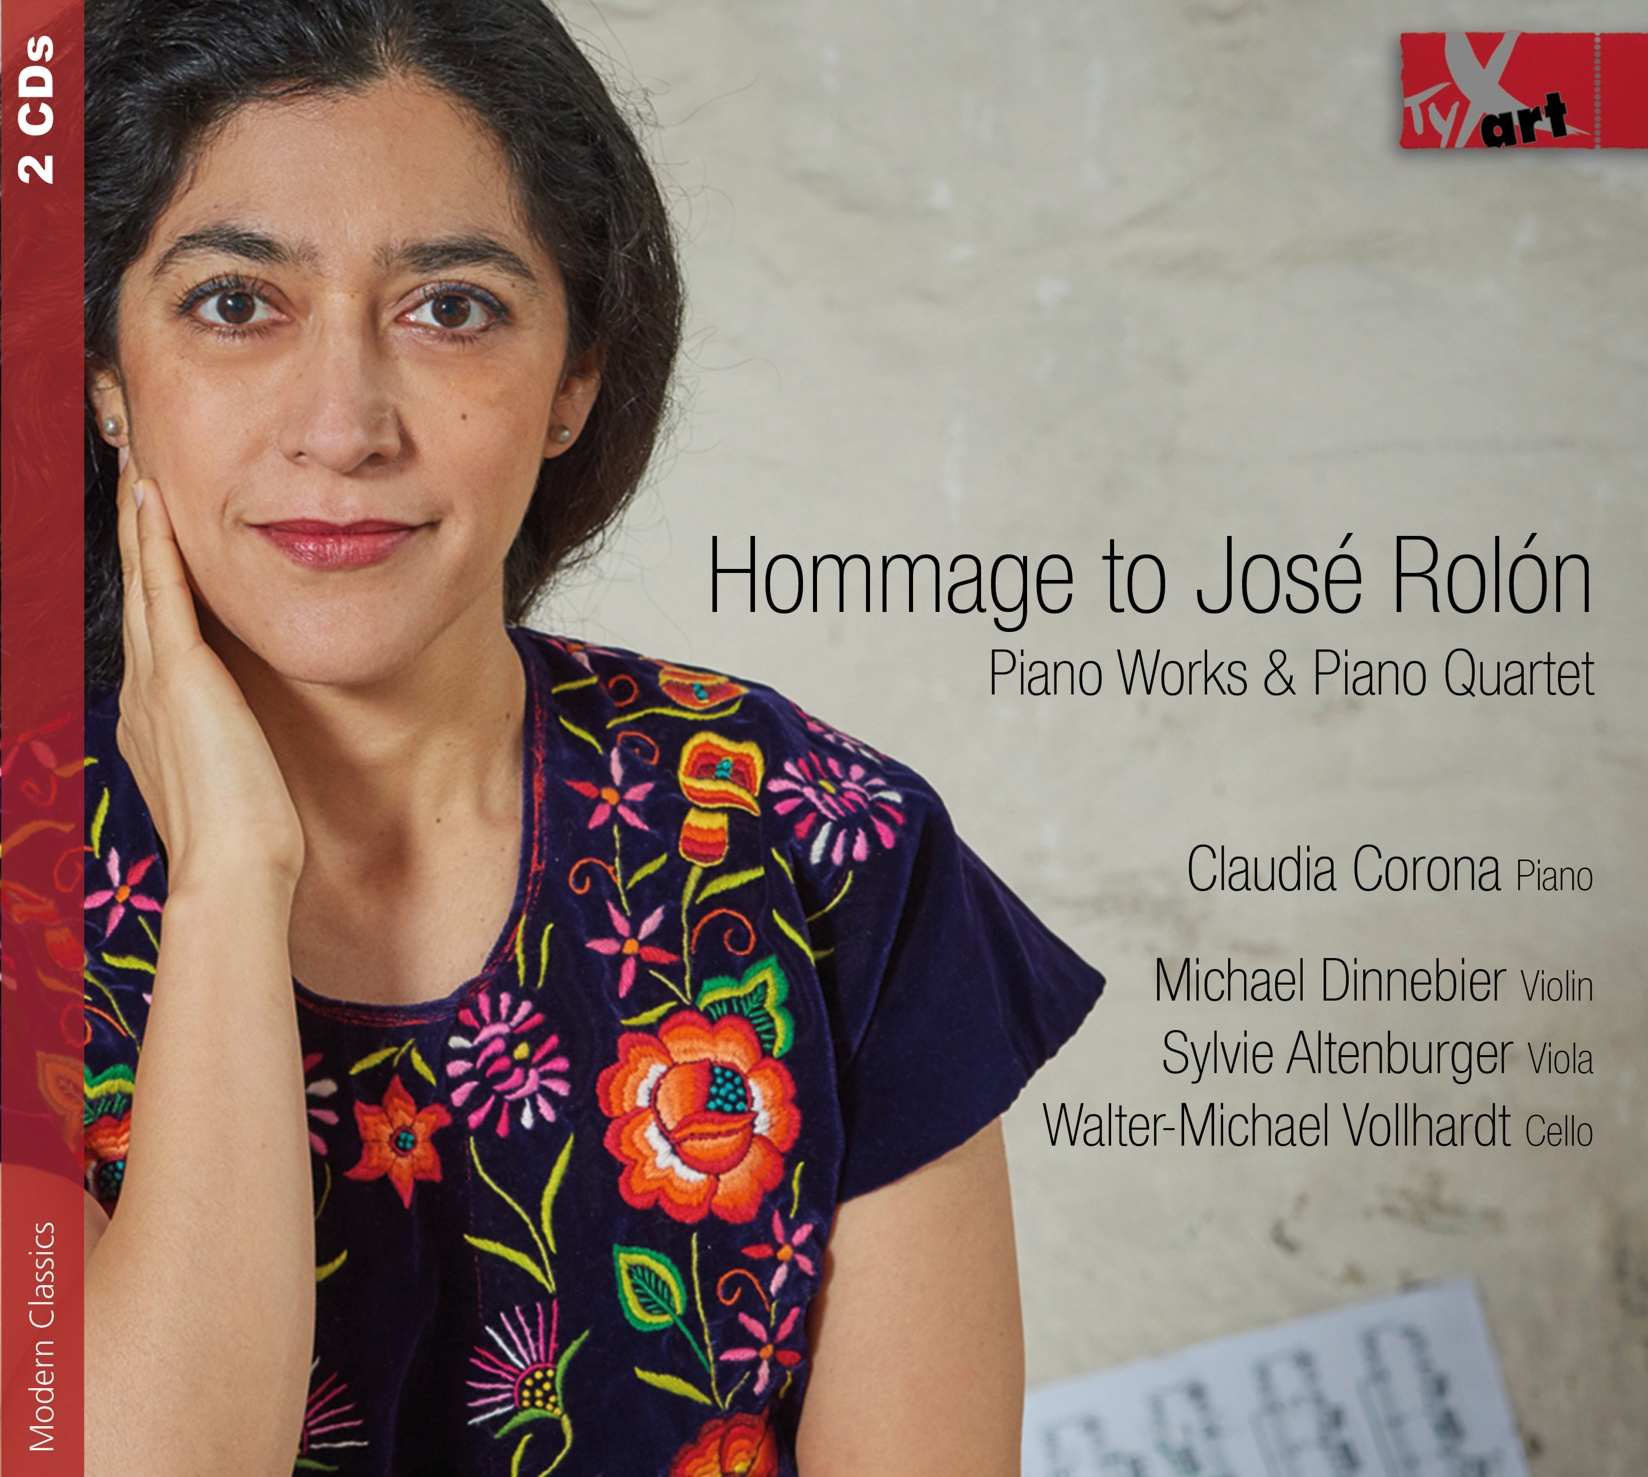 Hommage to José Rolón: Piano Works & Piano Quartet